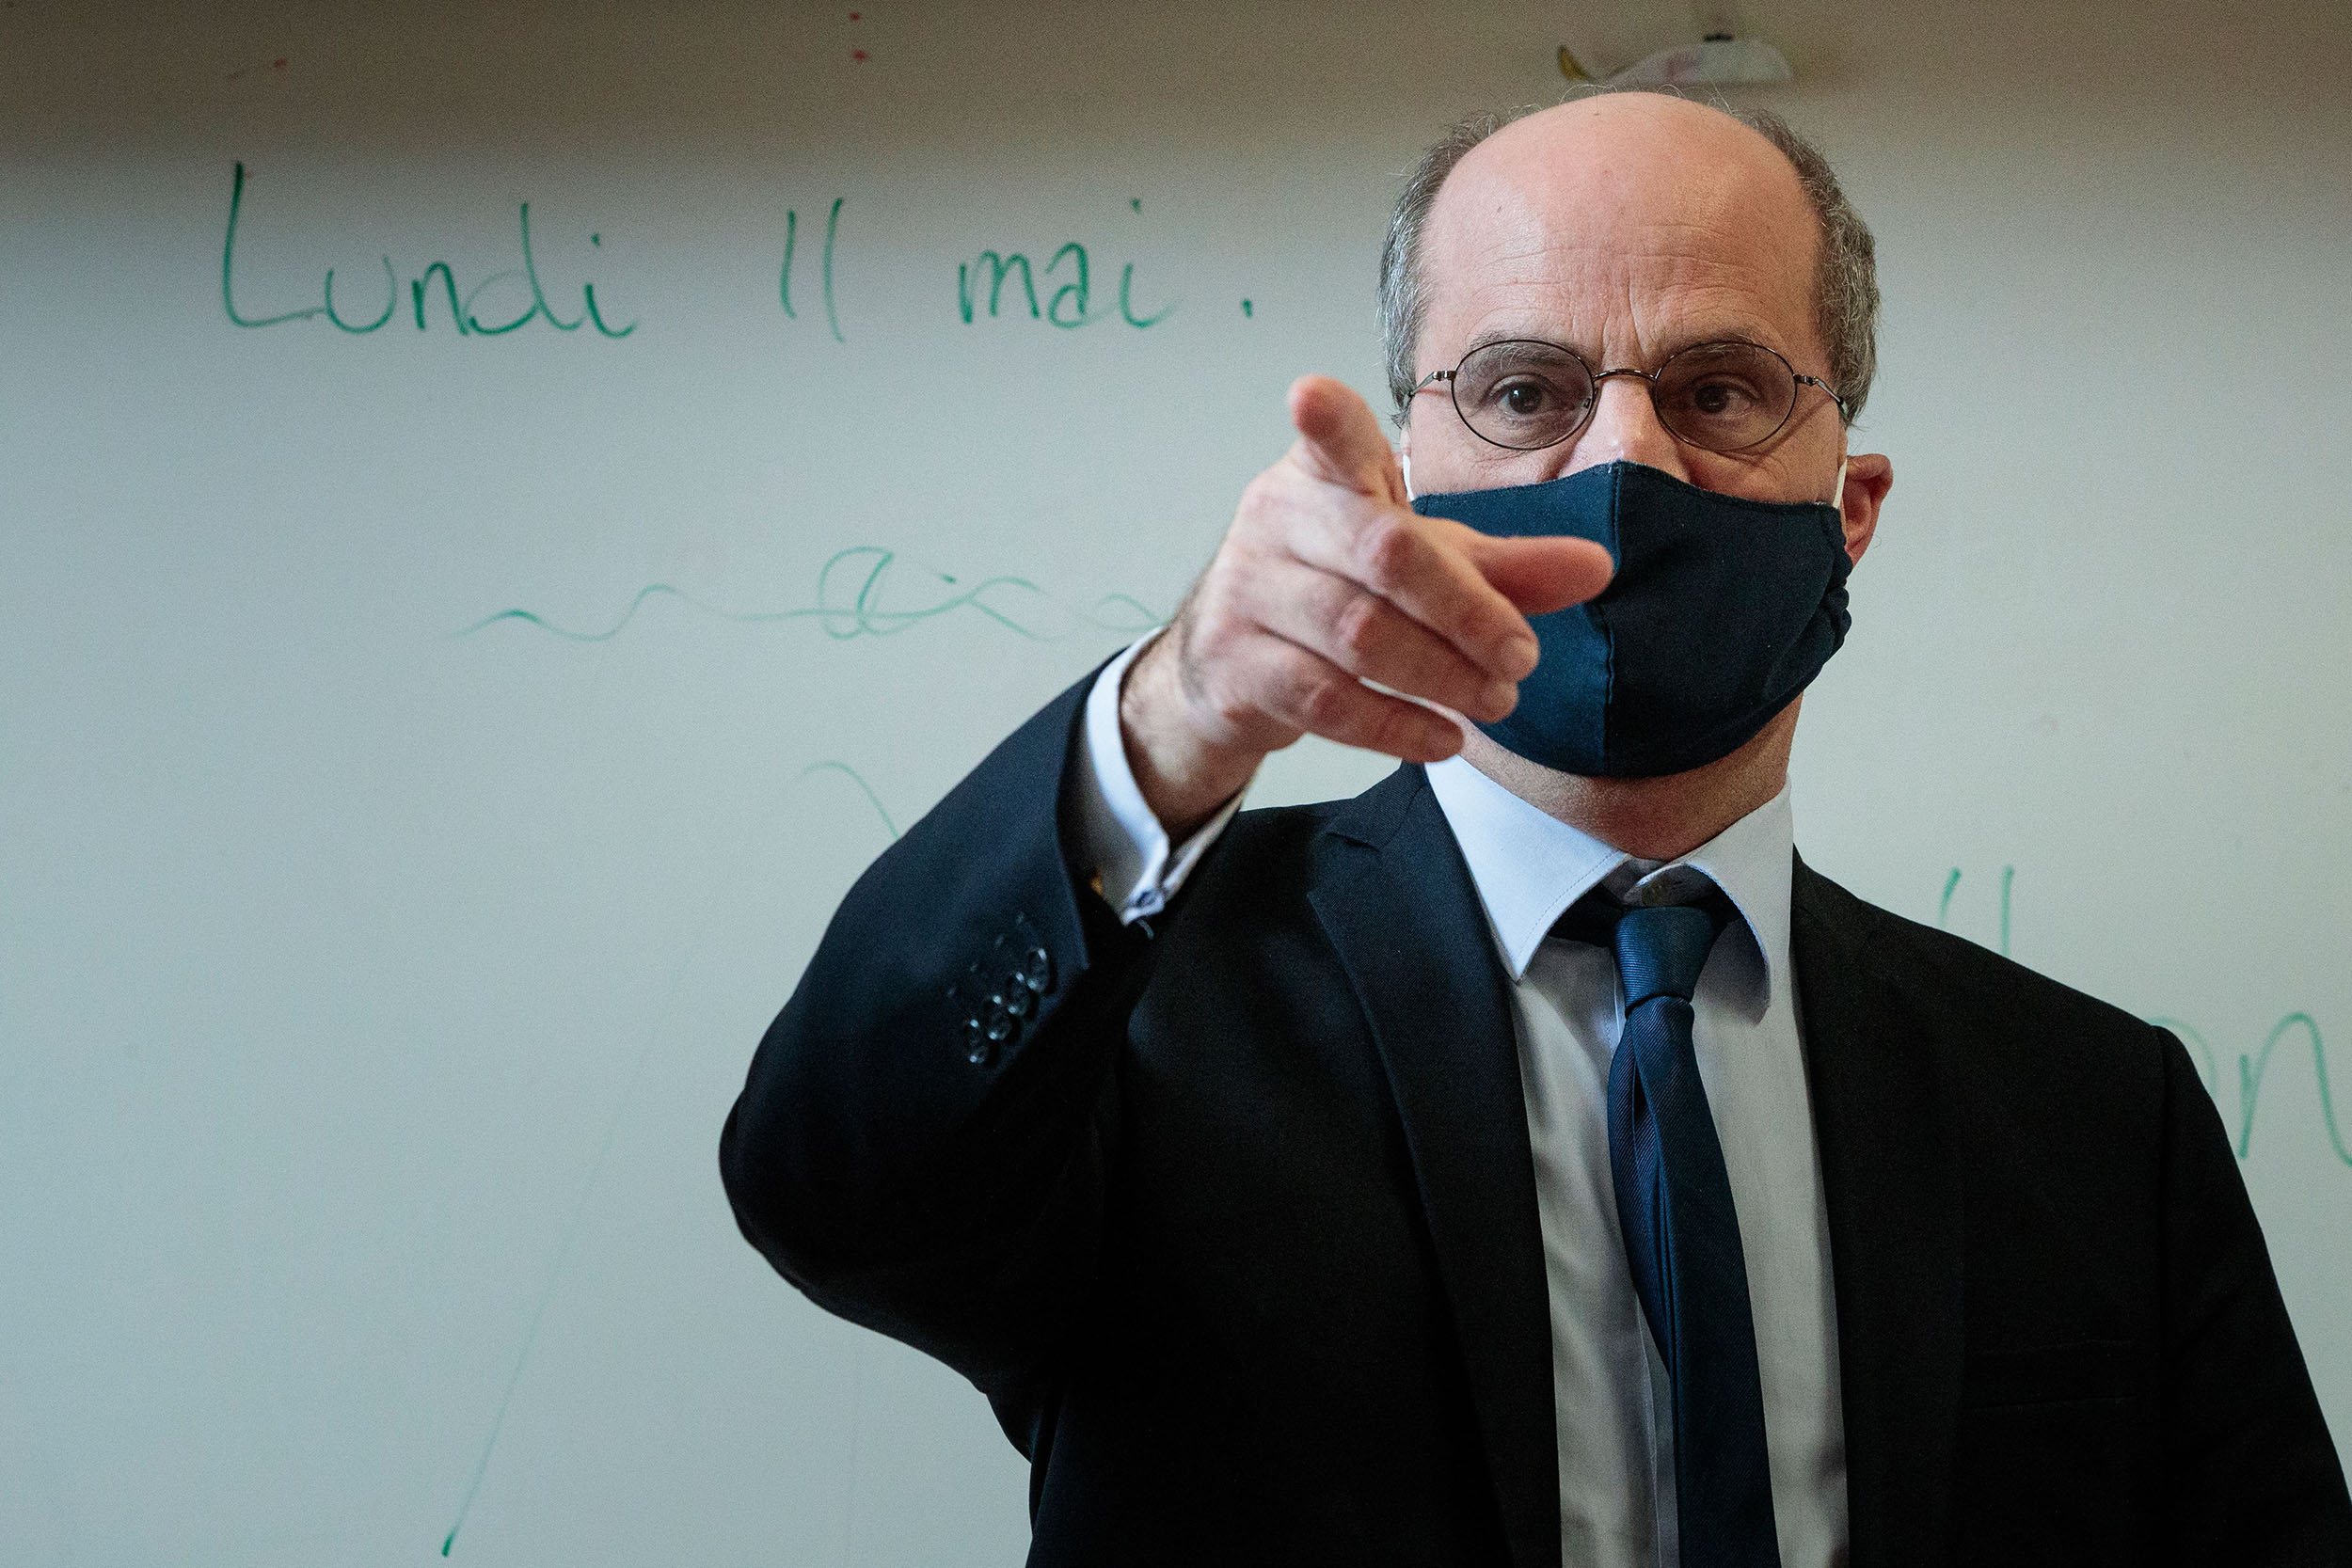 French Education and Youth Affairs Minister Jean-Michel Blanquer wears a mask during a school visit in Paris, France, on May 11.